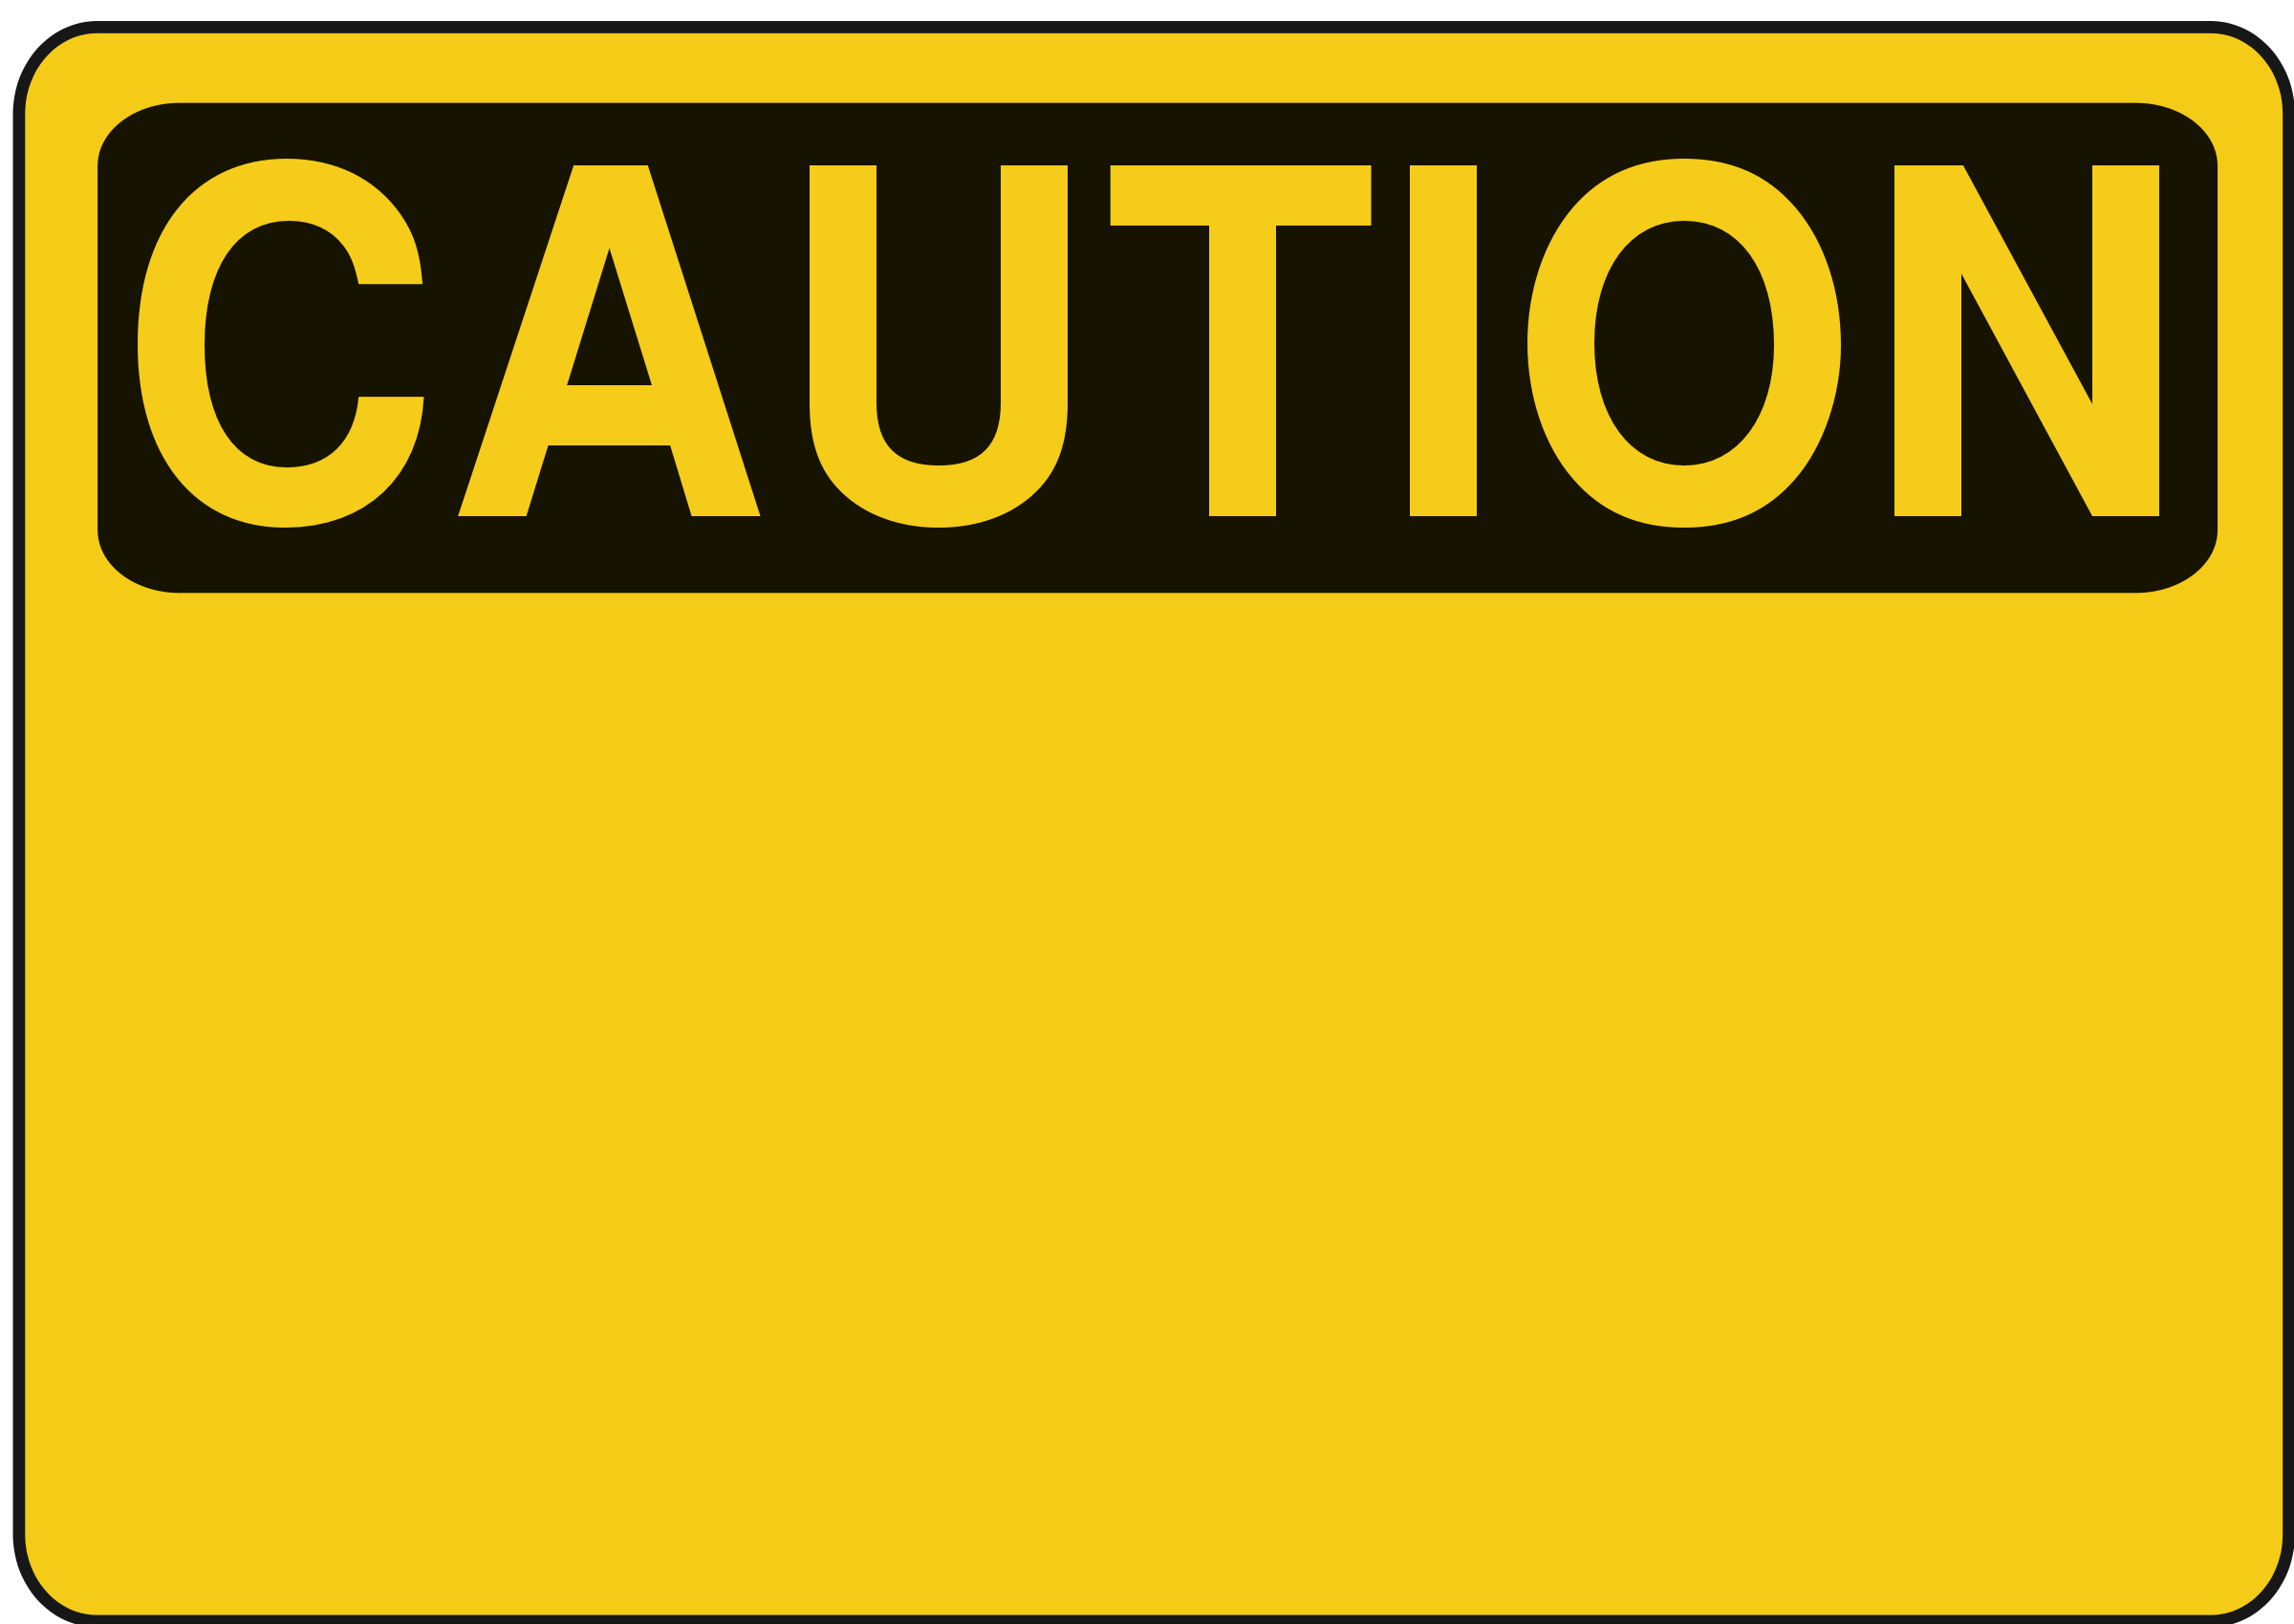 2400x1699 Danger clipart caution tape, Picture #1573641 danger clipart ...